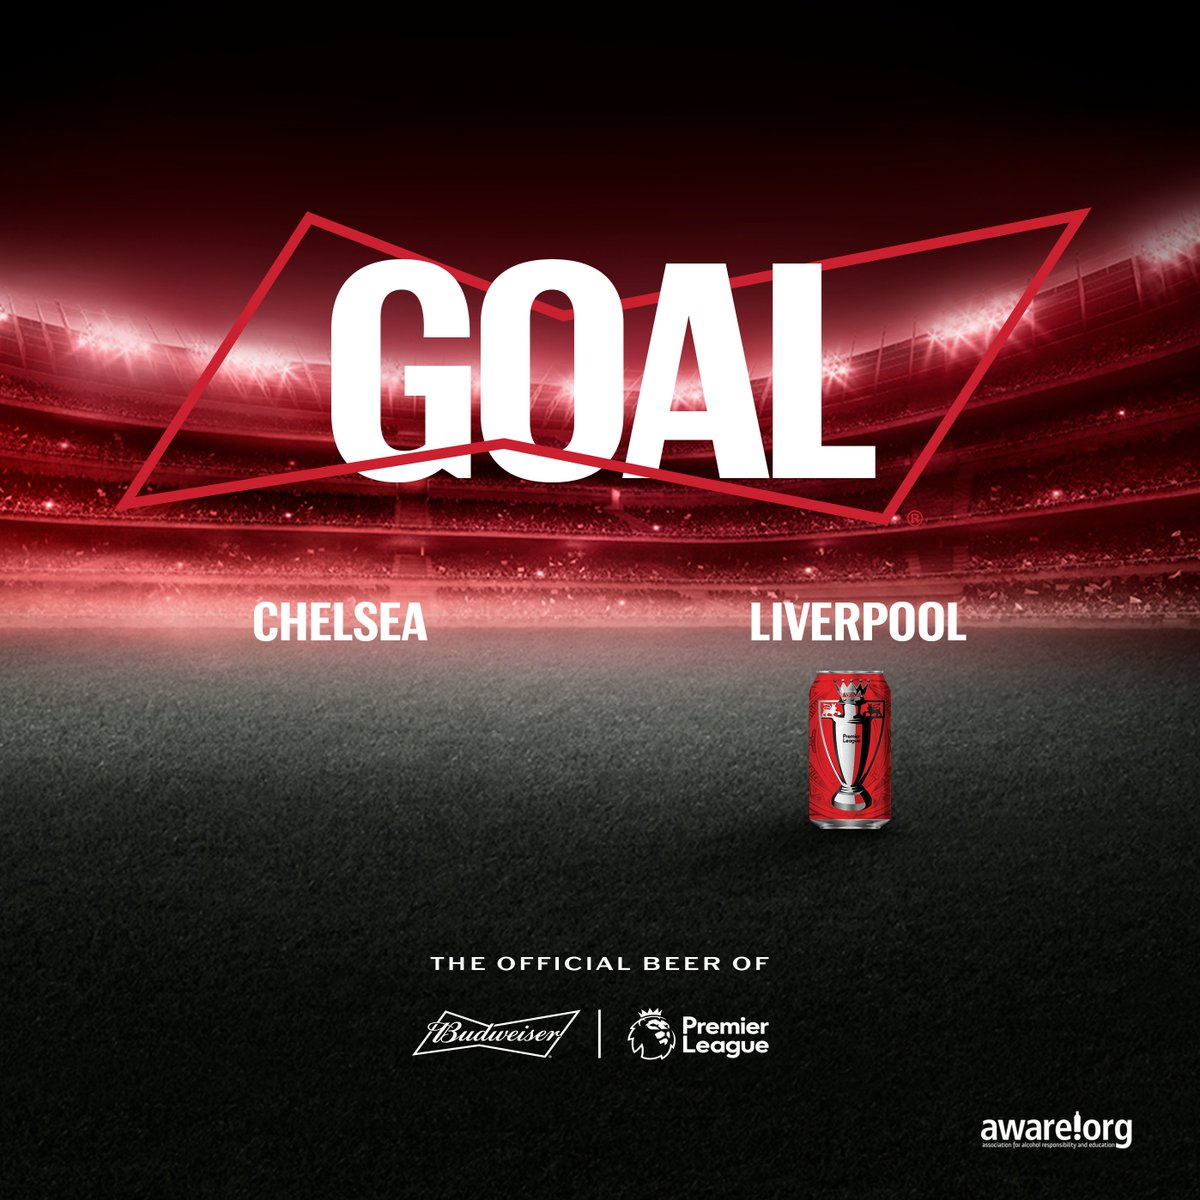 Liverpool find the breakthrough! More Liverpool goals or a Chelsea comeback? What do you see happening? #SmoothForNaijaKings #BeAKing #CHELIV https://t.co/kxUTXmrlMk